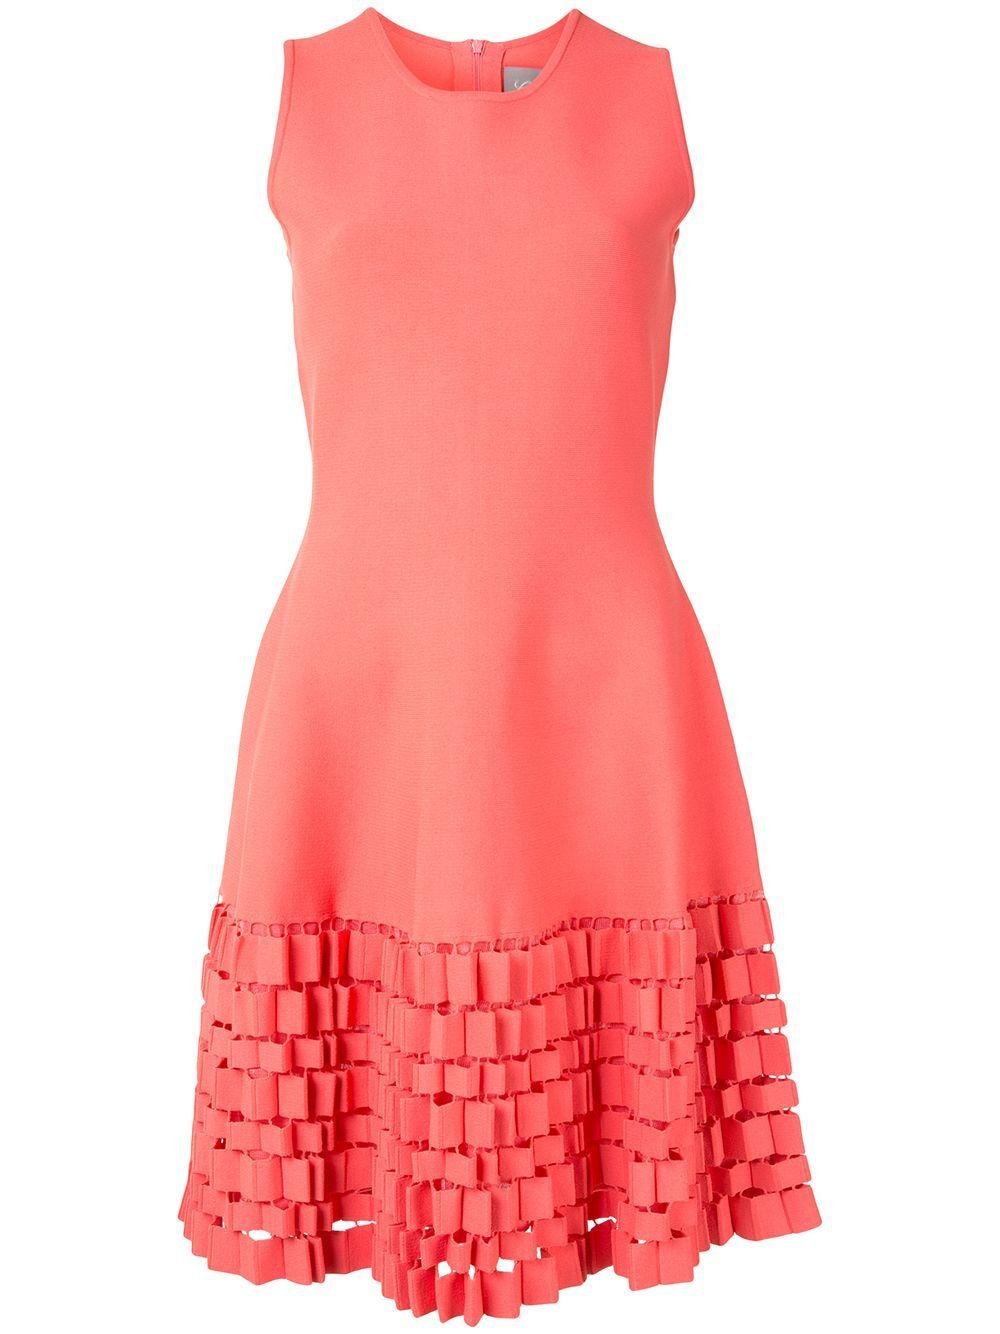 Cutout Detail Fit And Flare Dress Item # PF20KN3554